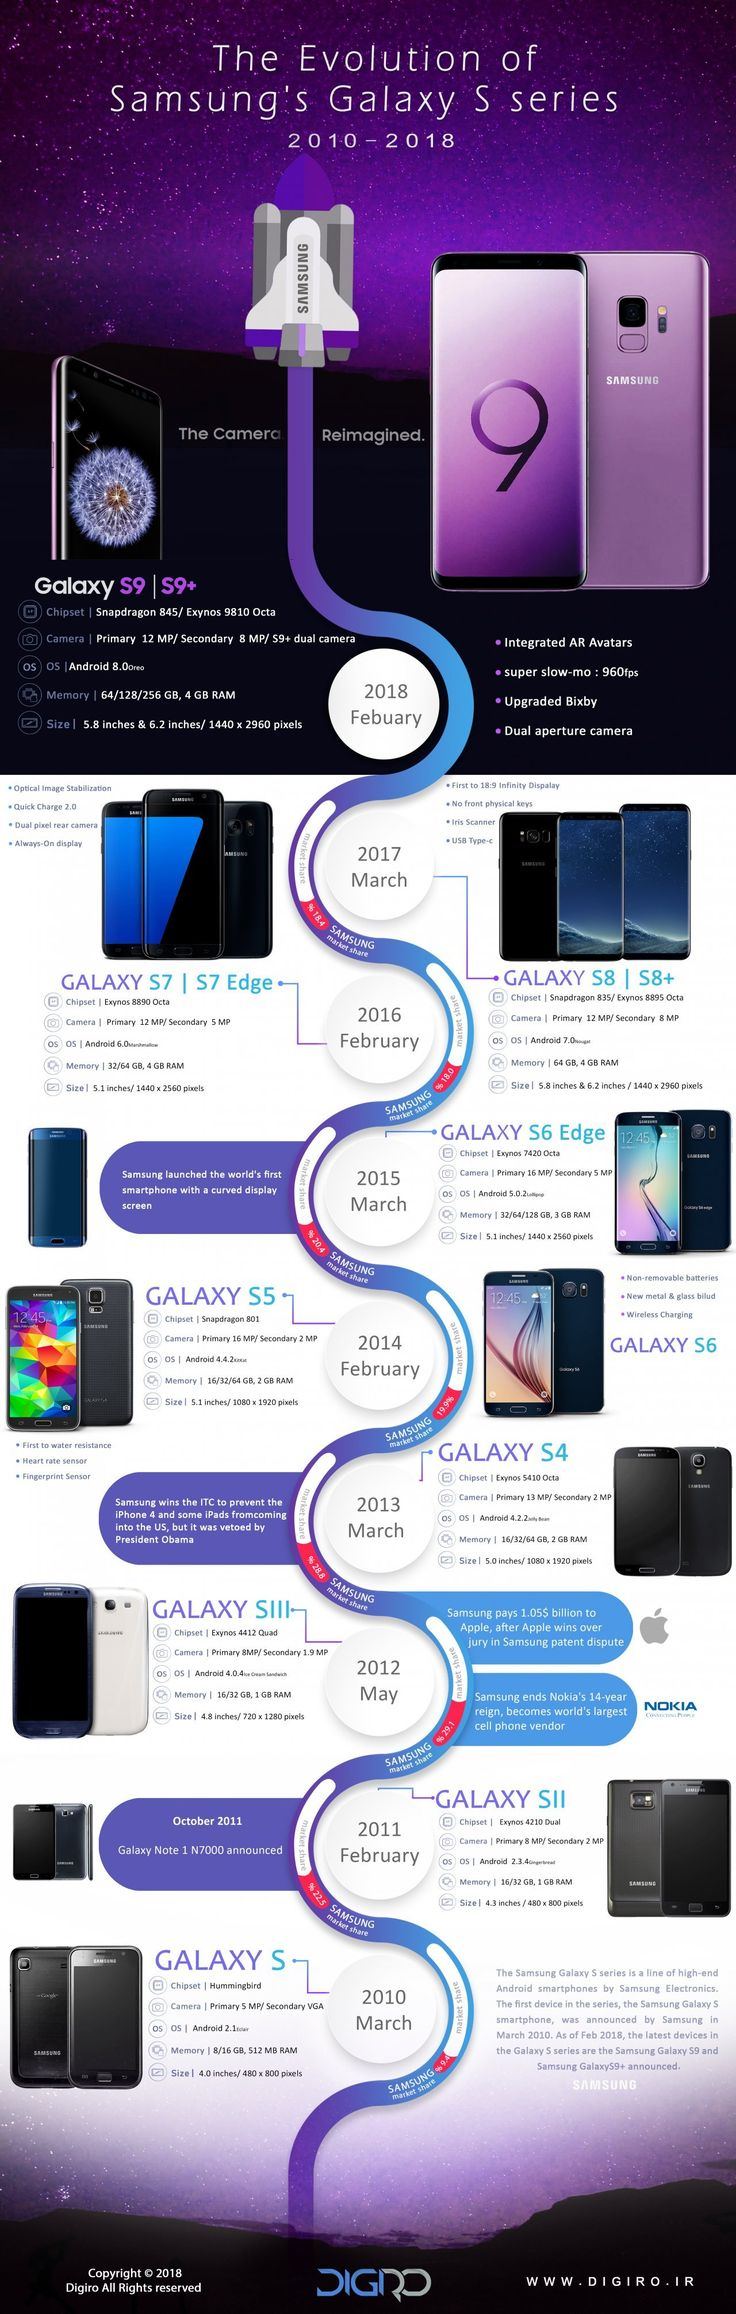 Infographic: Evolution of the Samsung Galaxy S Series, From Galaxy S to S9